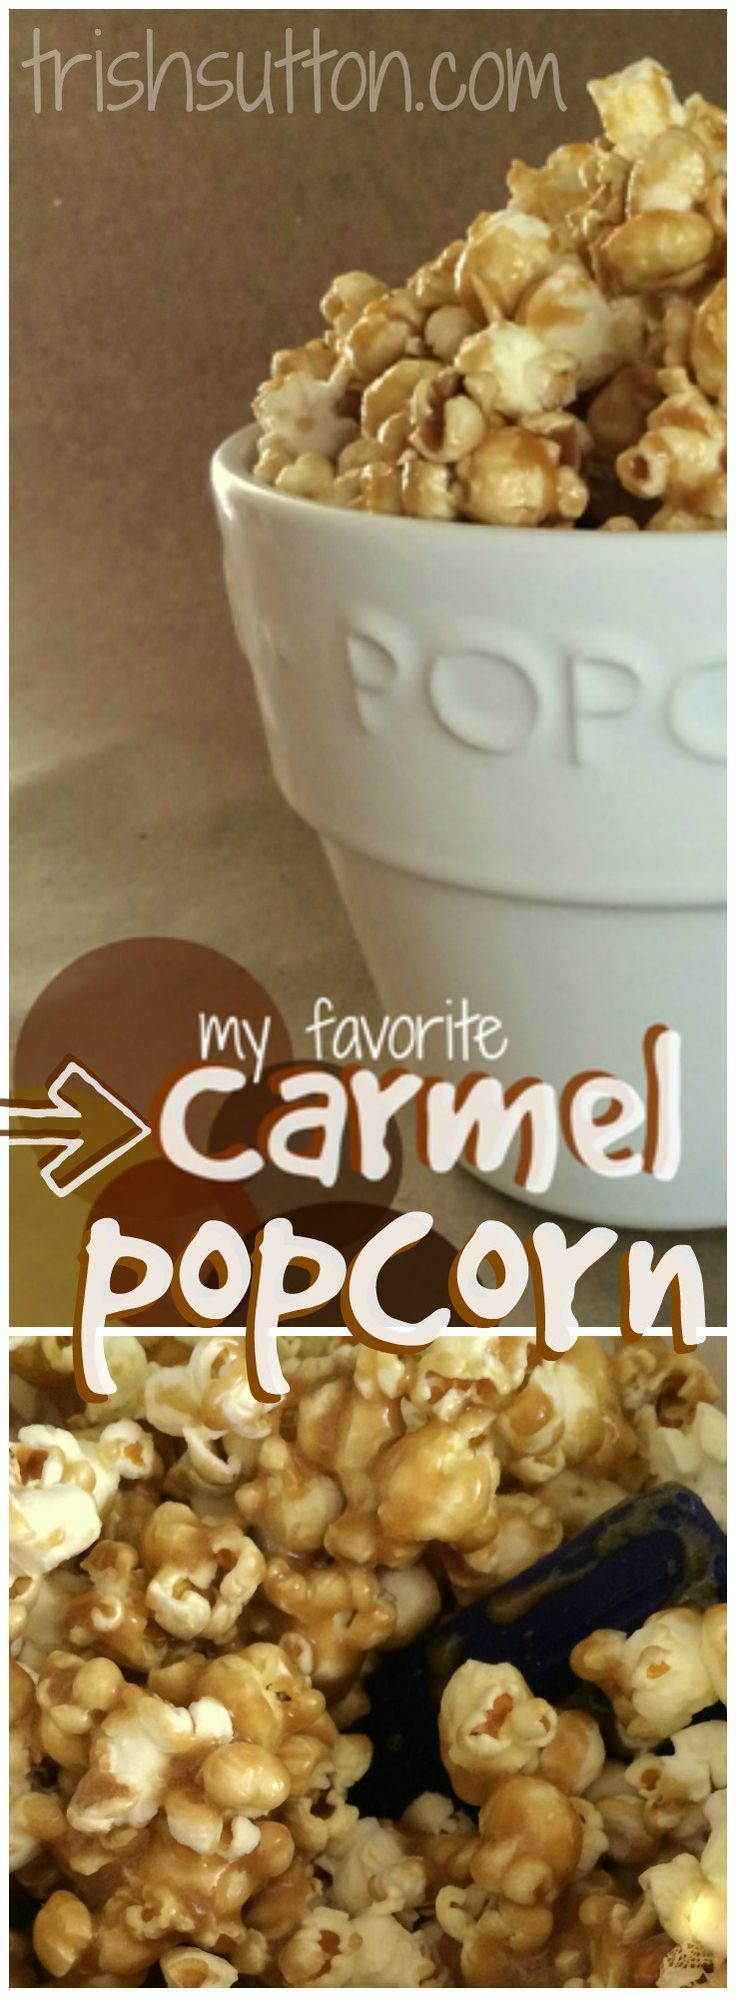 My Favorite Carmel Popcorn Recipe that can be made chewy or crunchy; whichever you desire. TrishSutton.com